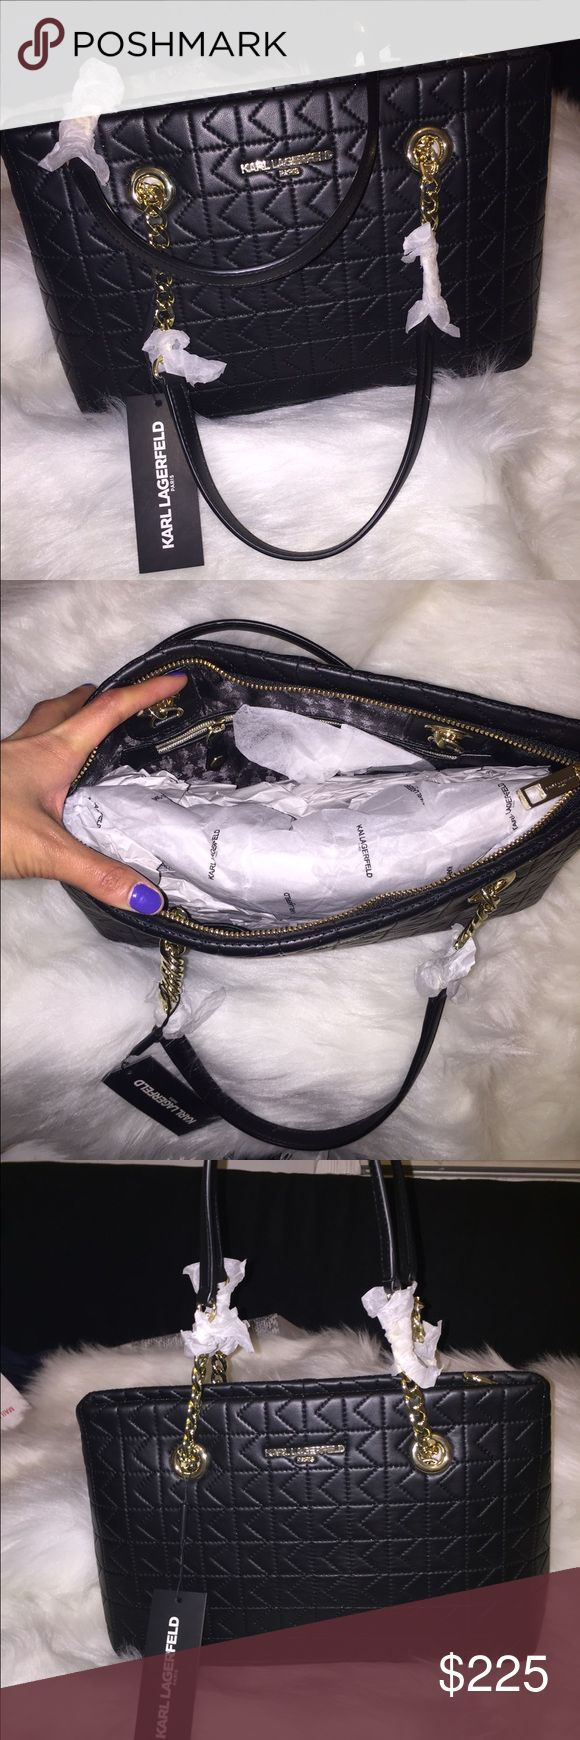 """NWT! Karl Lagerfeld"""" BlK Quilted Lamb Bag! NWT! Karl Lagerfeld"""" BlK Quilted Lamb Bag! Gorgeous Bag! No Trades! Brand New! Karl Lagerfeld Bags Shoulder Bags"""